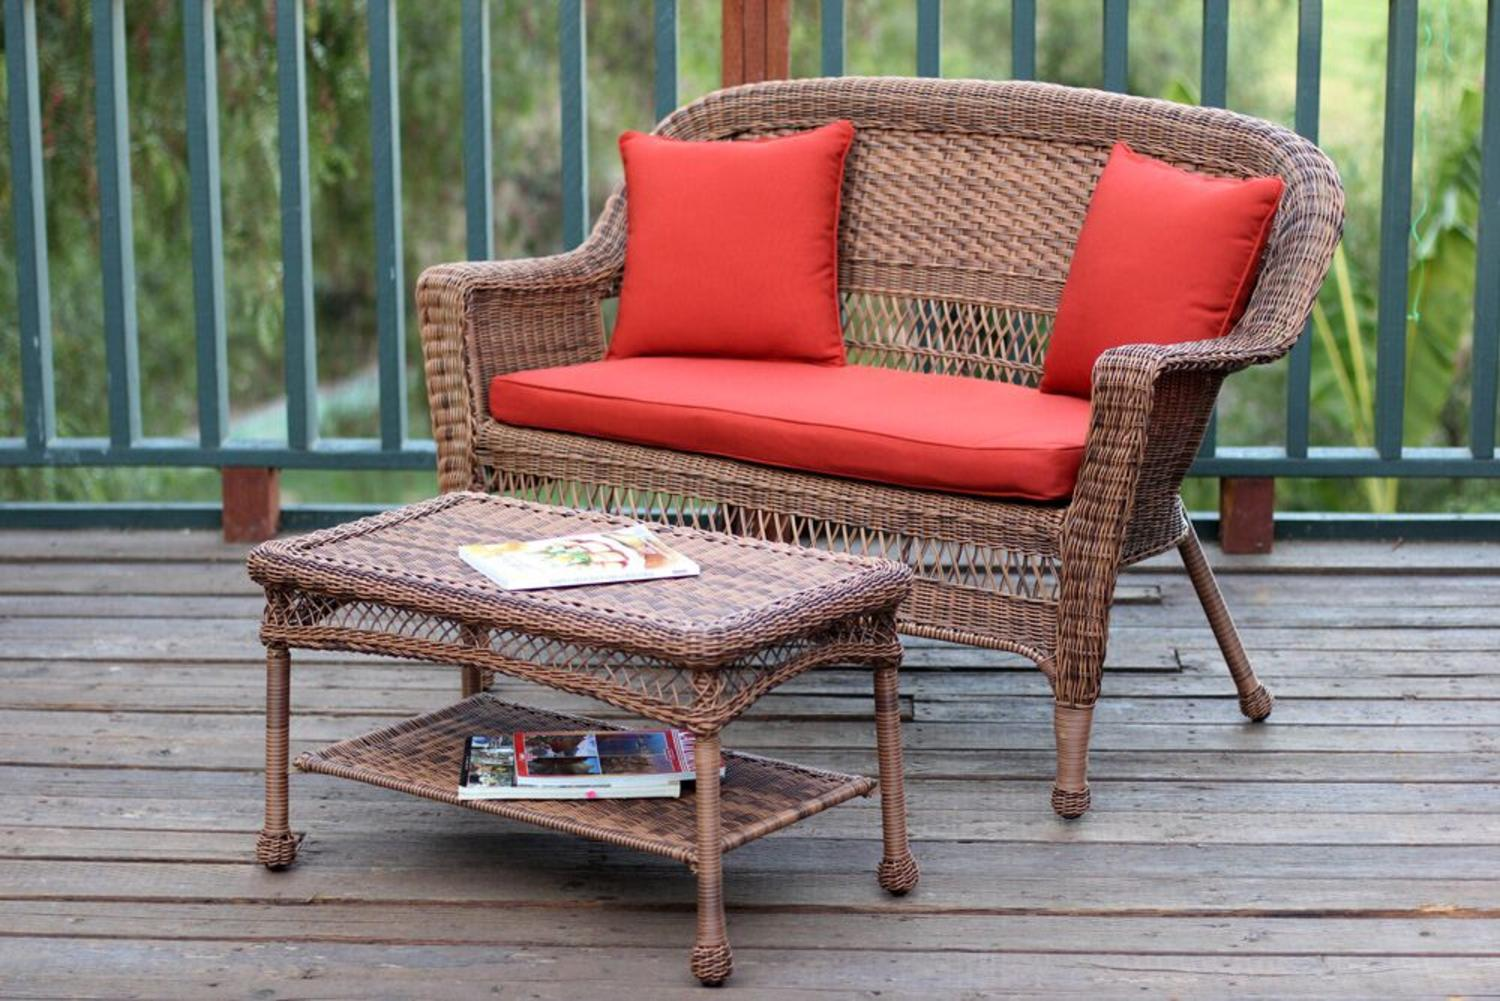 2-Piece Oswald Honey Resin Wicker Patio Loveseat and Coffee Table Set Red Cushion by CC Outdoor Living